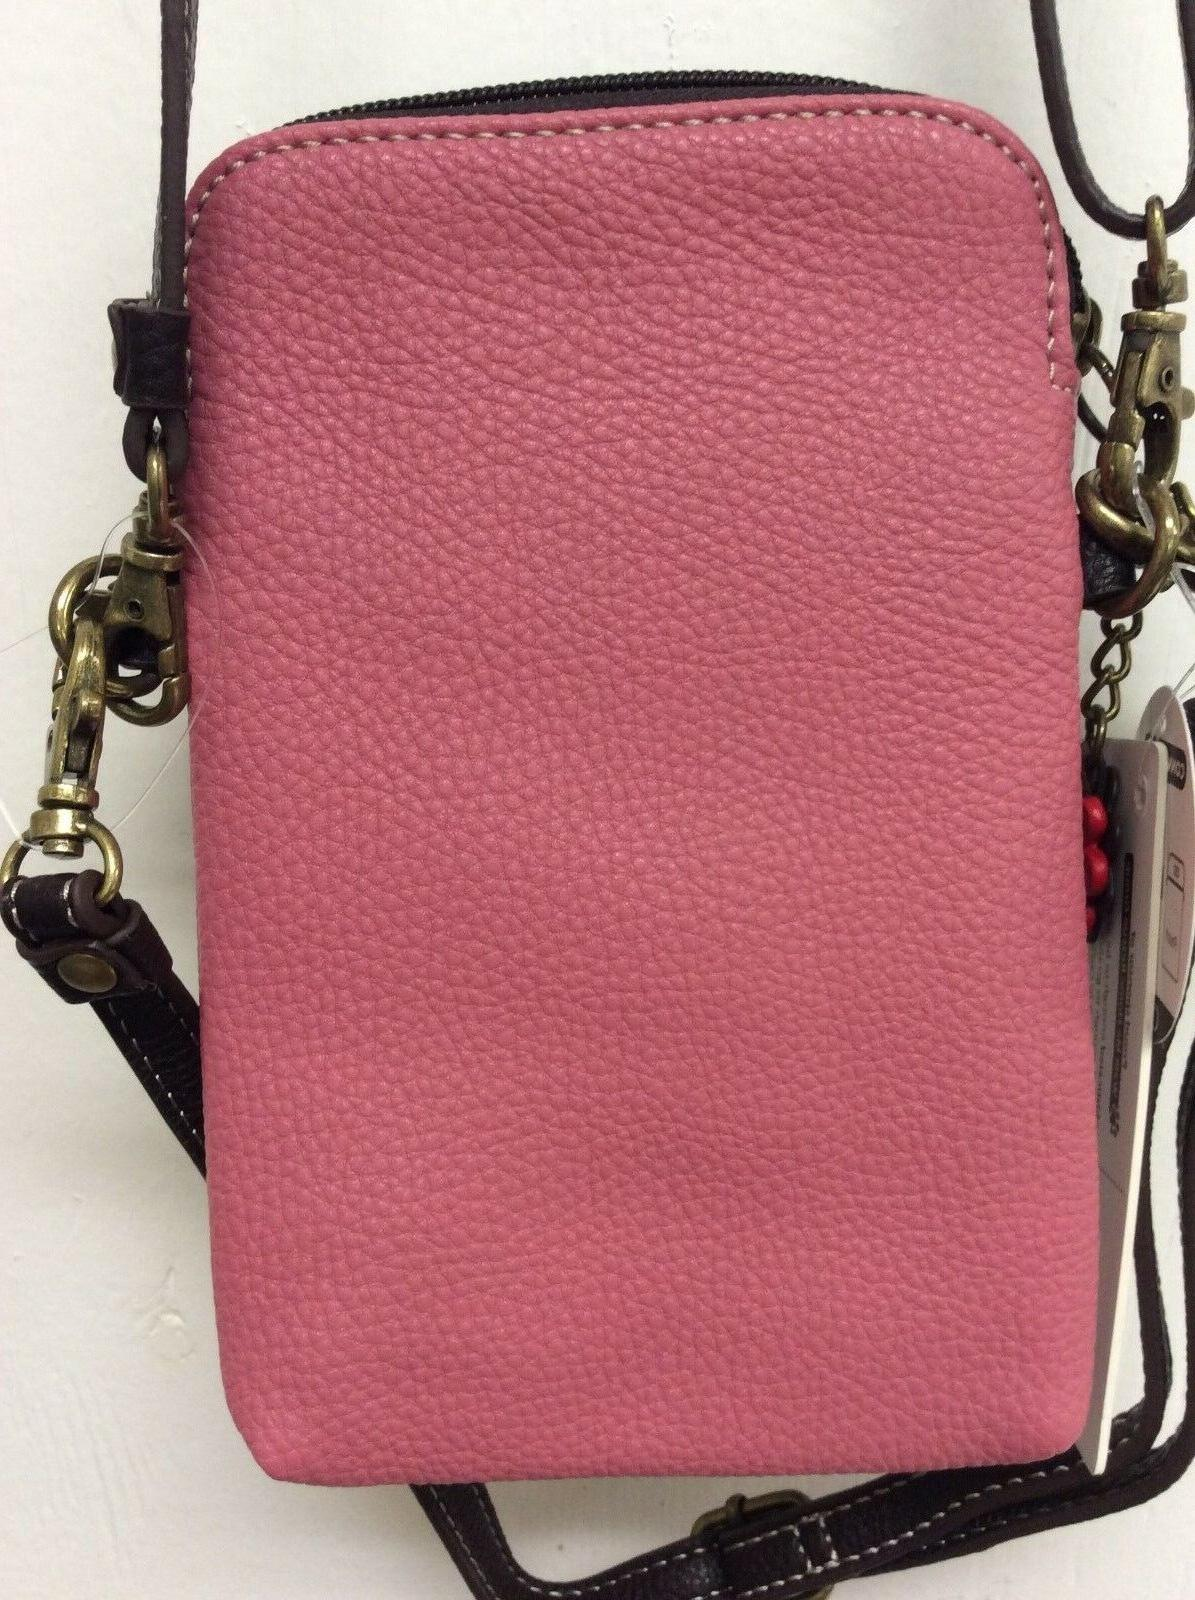 Phone Bag Convertible Purse